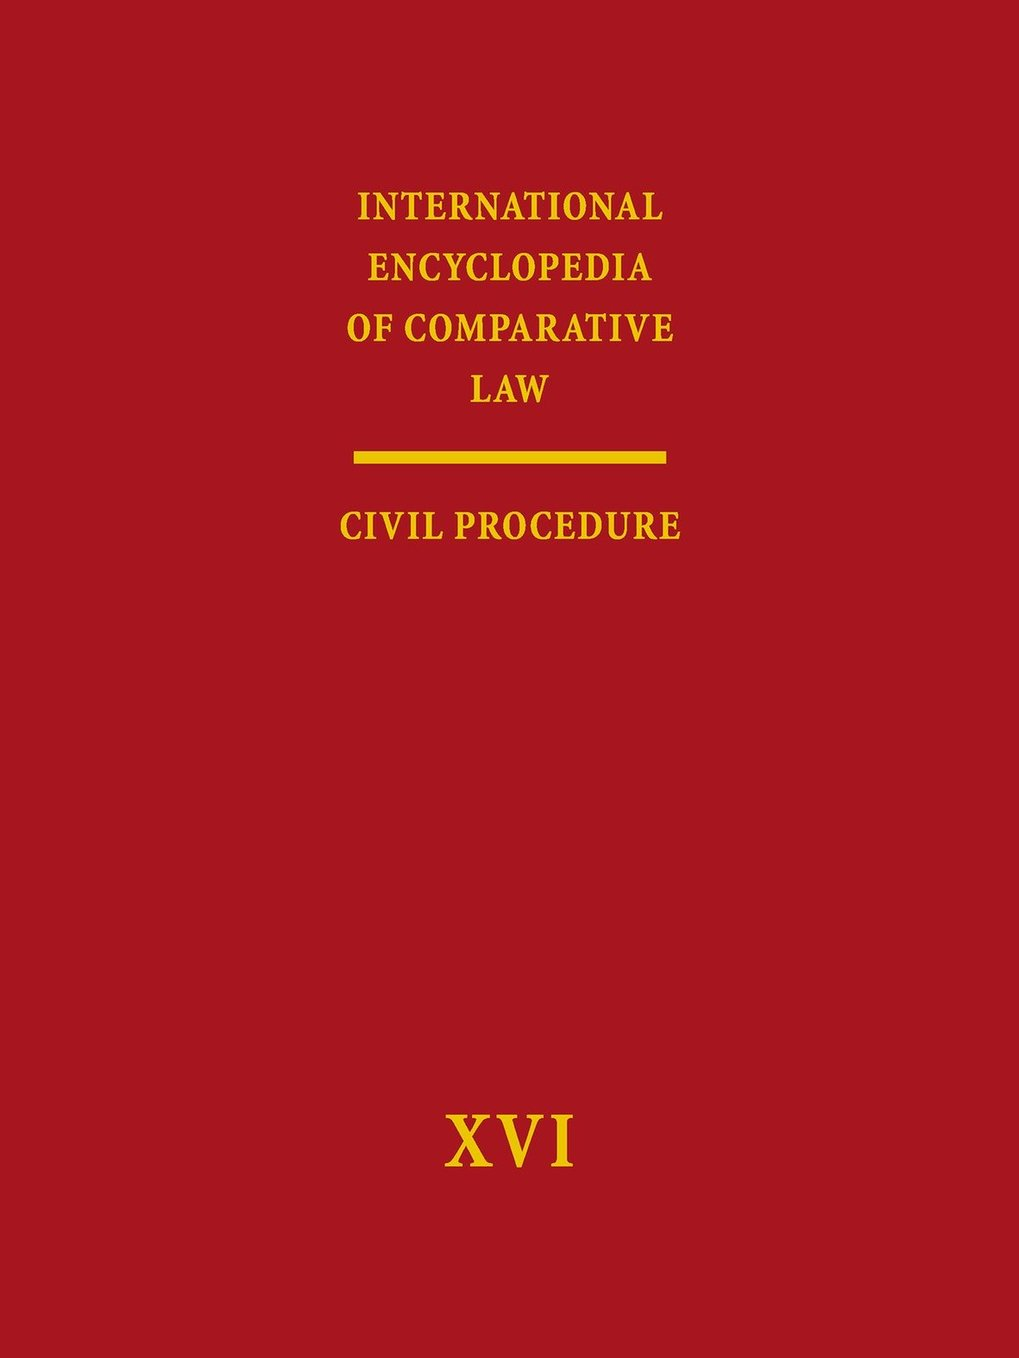 International Encyclopedia of Comparative Law